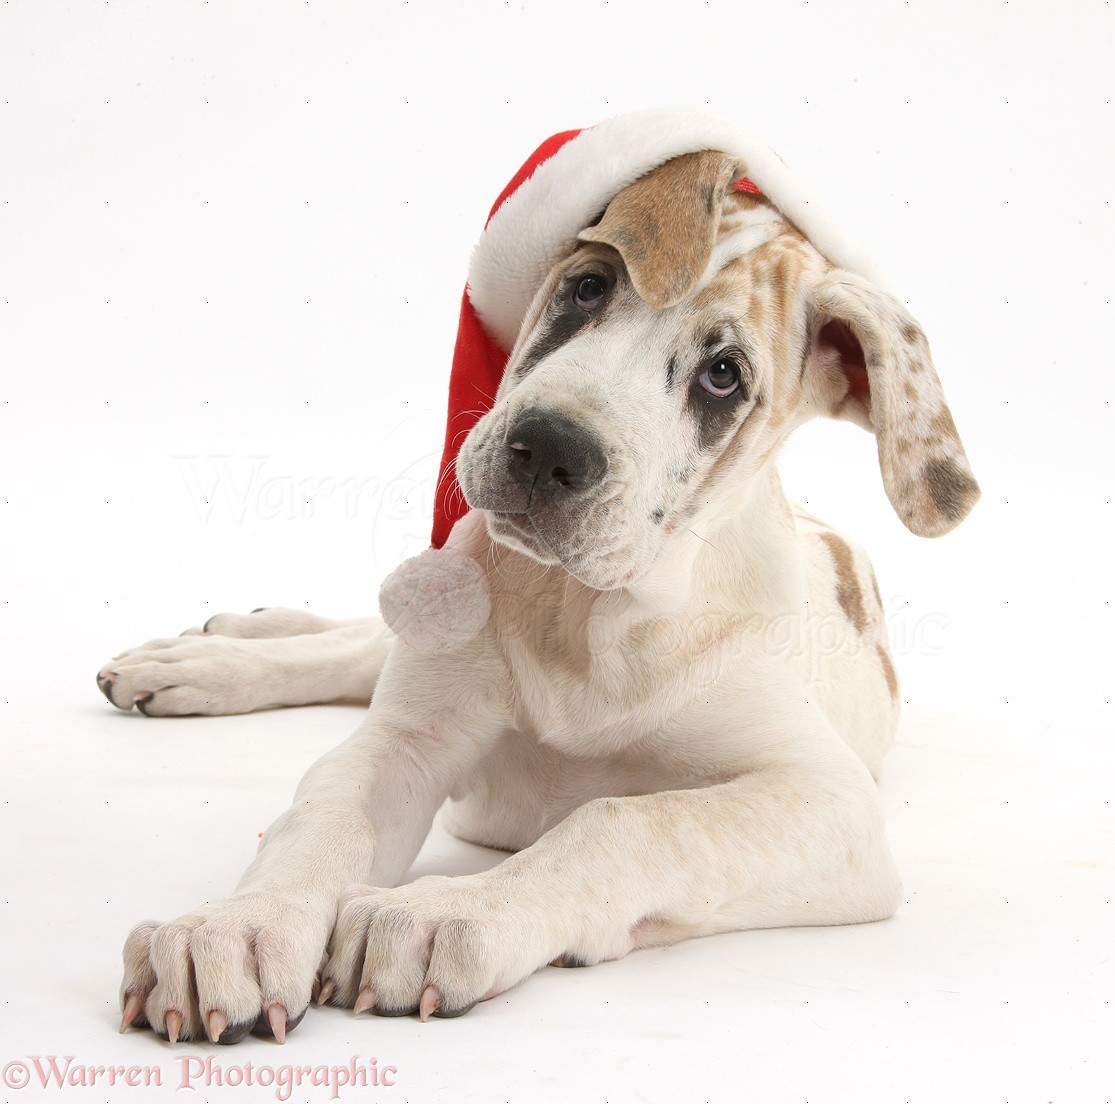 Dog: Great Dane puppy wearing a Santa hat photo WP37897